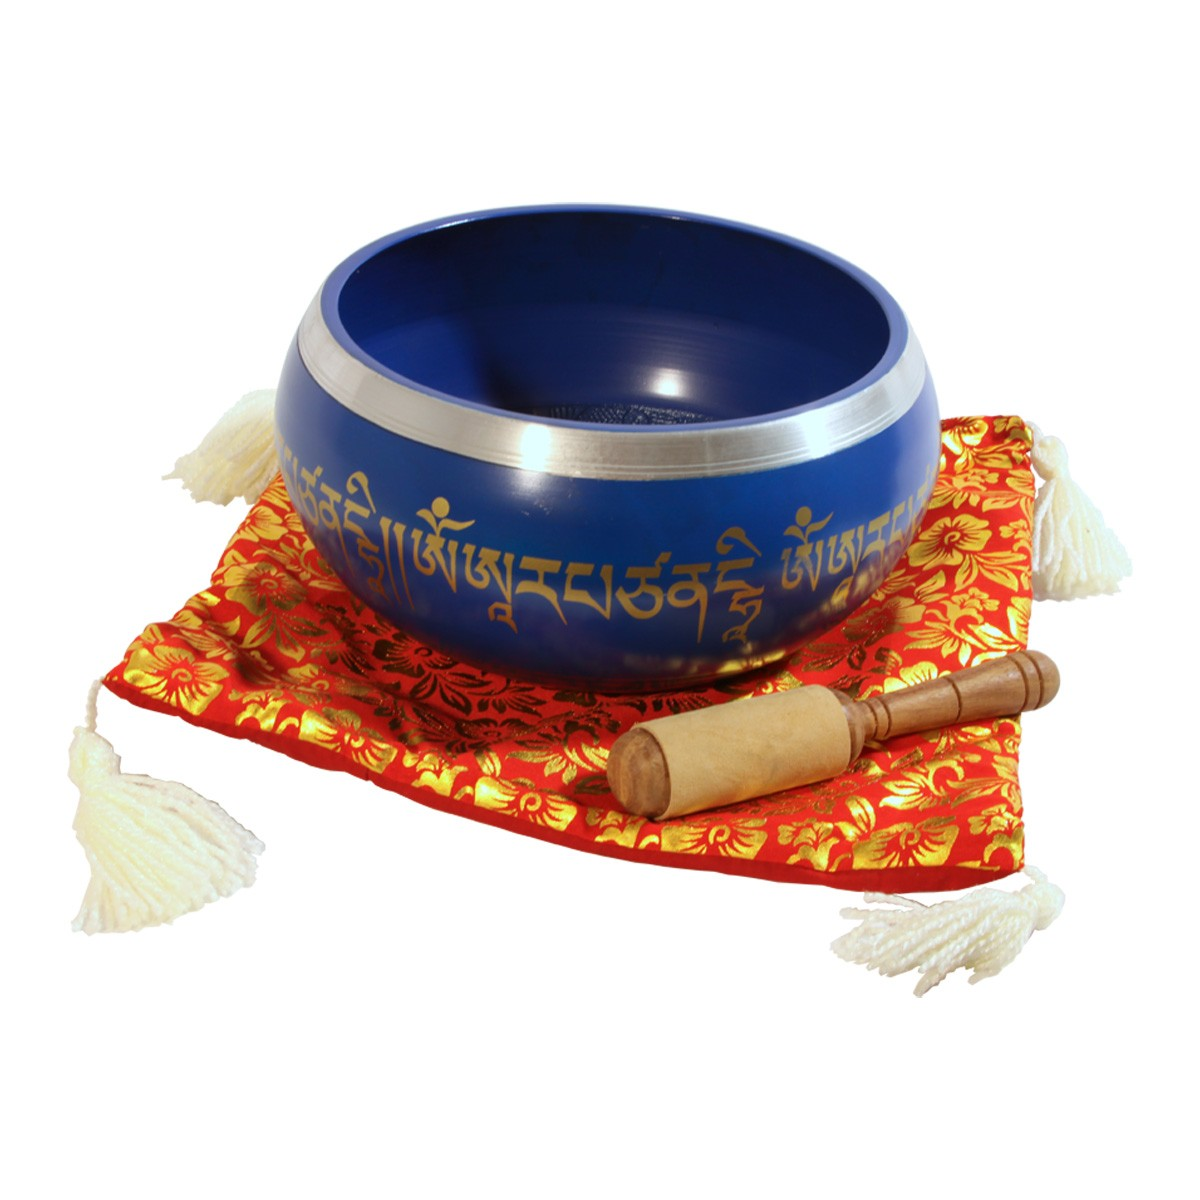 DOBANI Aluminum Singing Bowl 8 -Inch, Blue